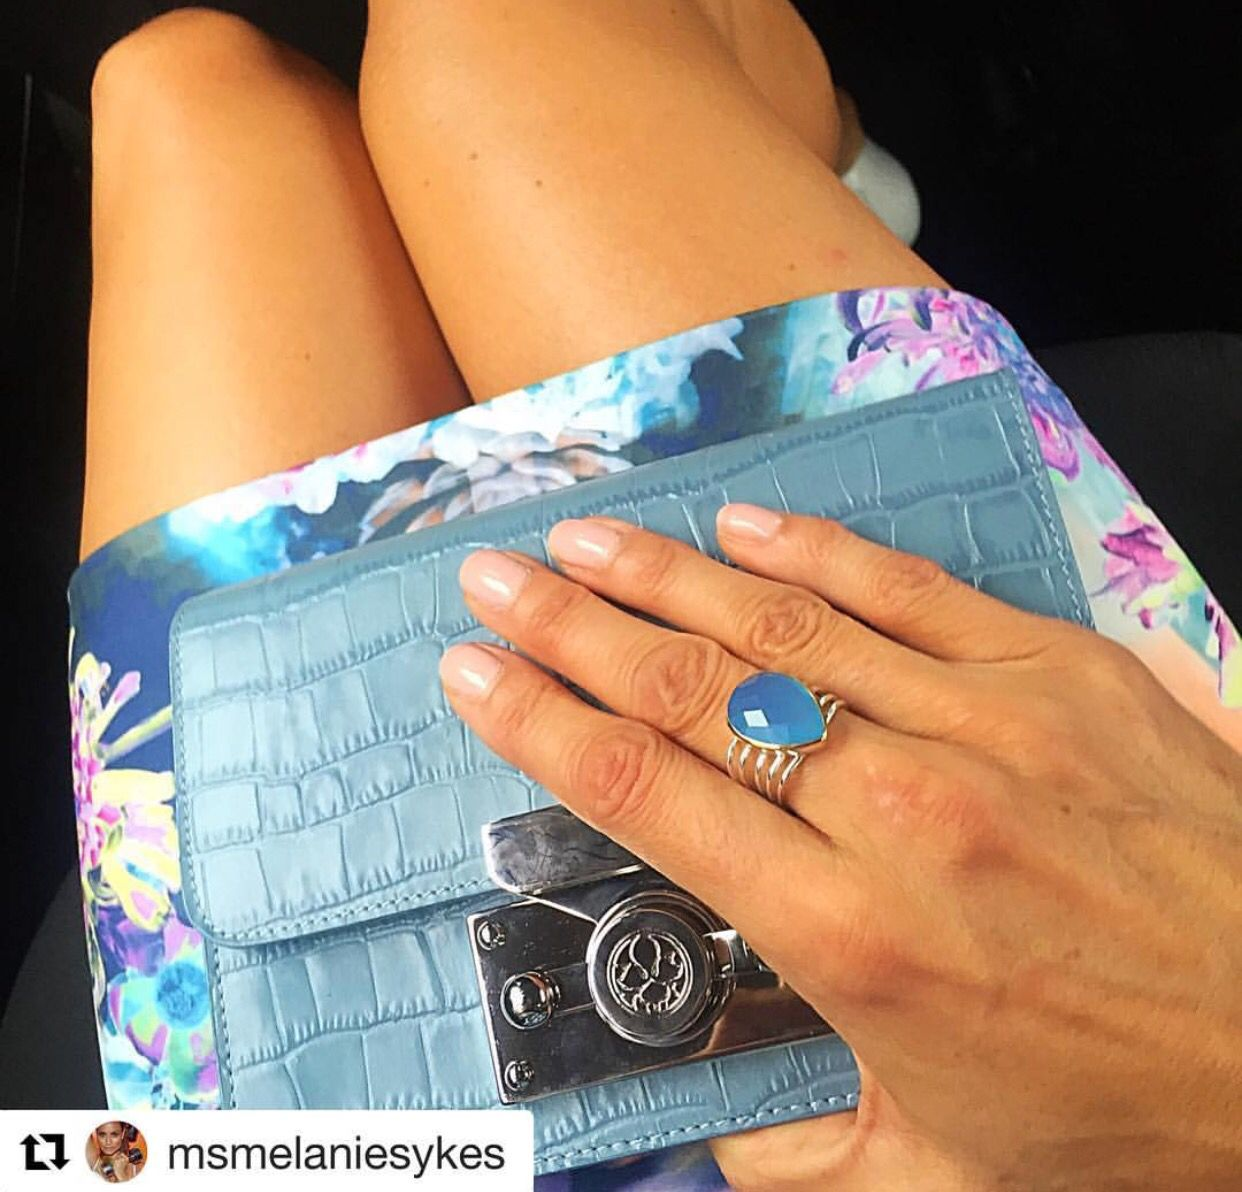 Beautiful English ITV presenter and model spotted with Saya Croco blue  at the ITV summer party.  #Repost @msmelaniesykes with @repostapp ・・・ My little ensemble last night @hybridfashion beautiful clutch @subella_london and ring @delmaestro_byc #itvsummerparty #dress #clutchbag #jewelrydesigner #leather #jewelry